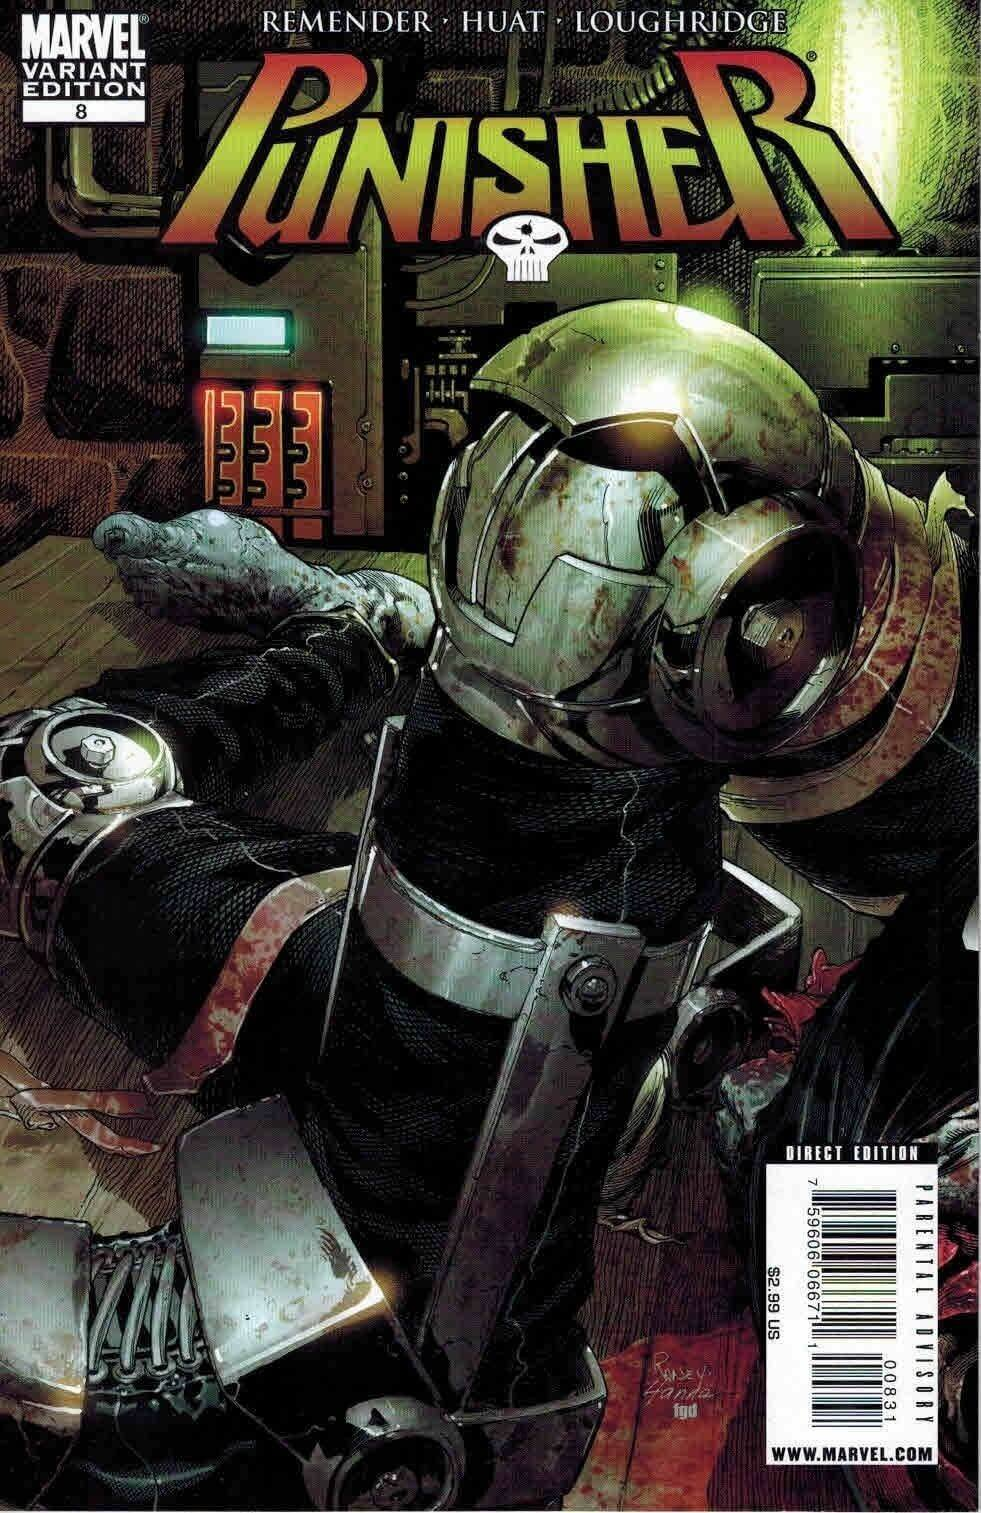 Punisher Vol 7 #8c Rest in Pieces Variant